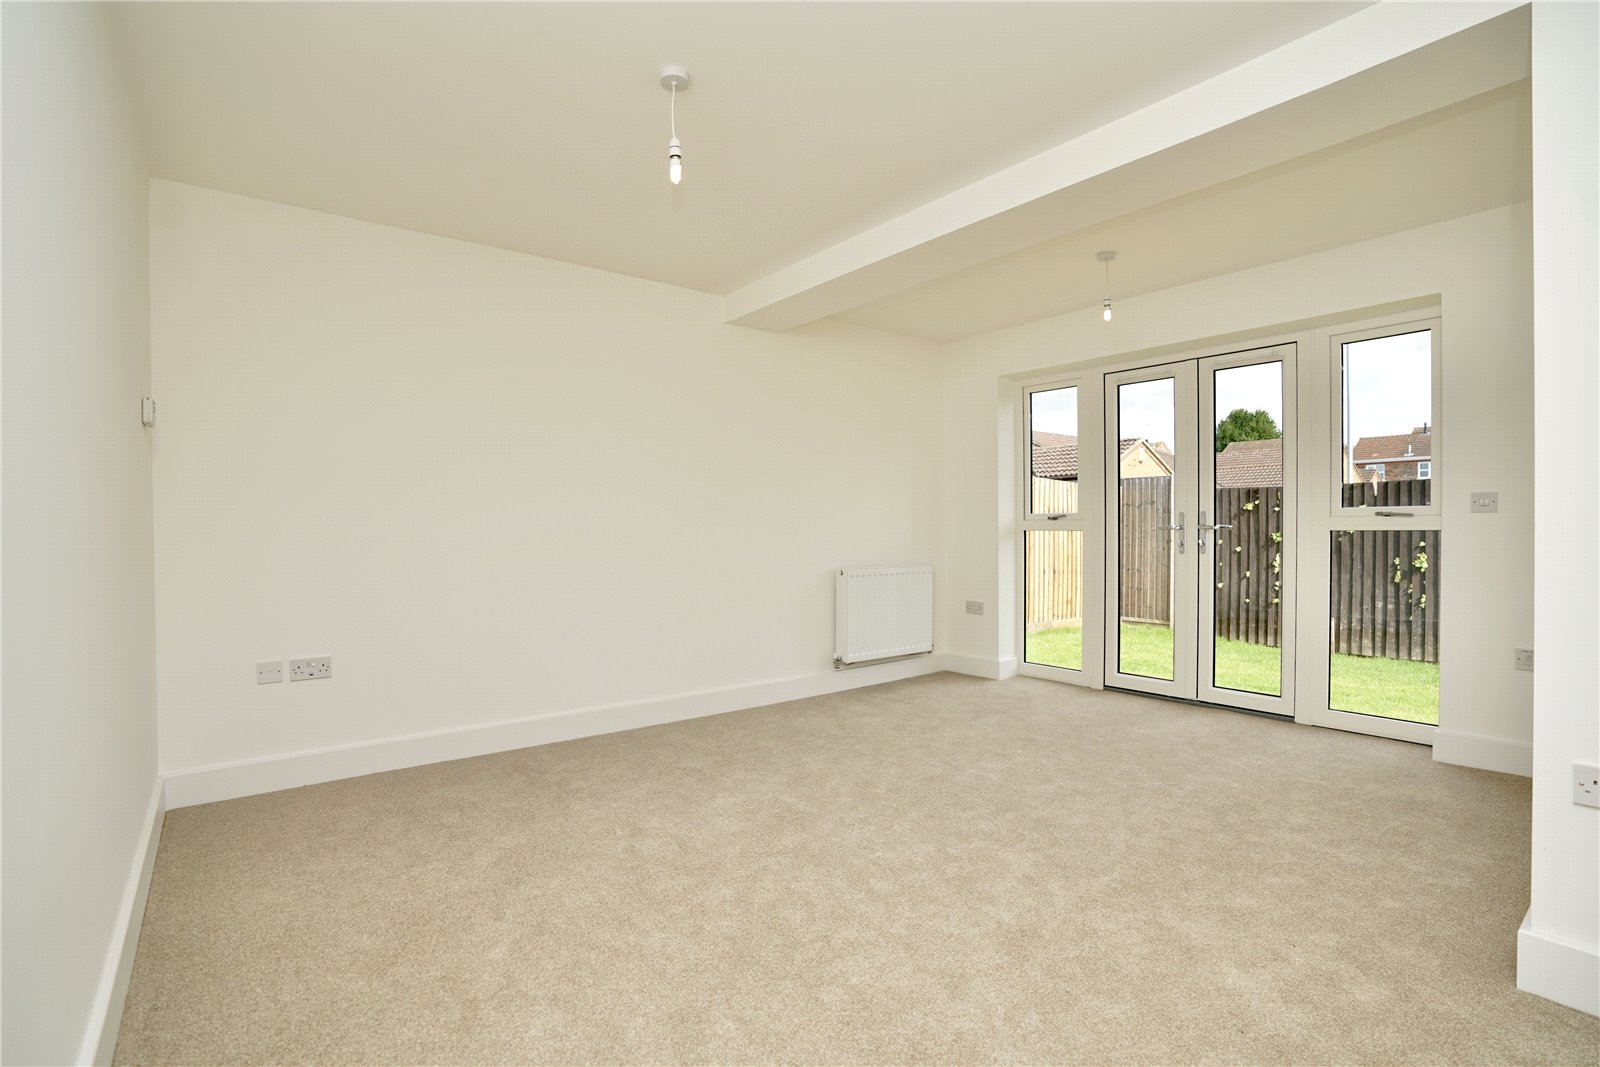 3 bed bungalow for sale in Whittlesey, PE7 1RU 3